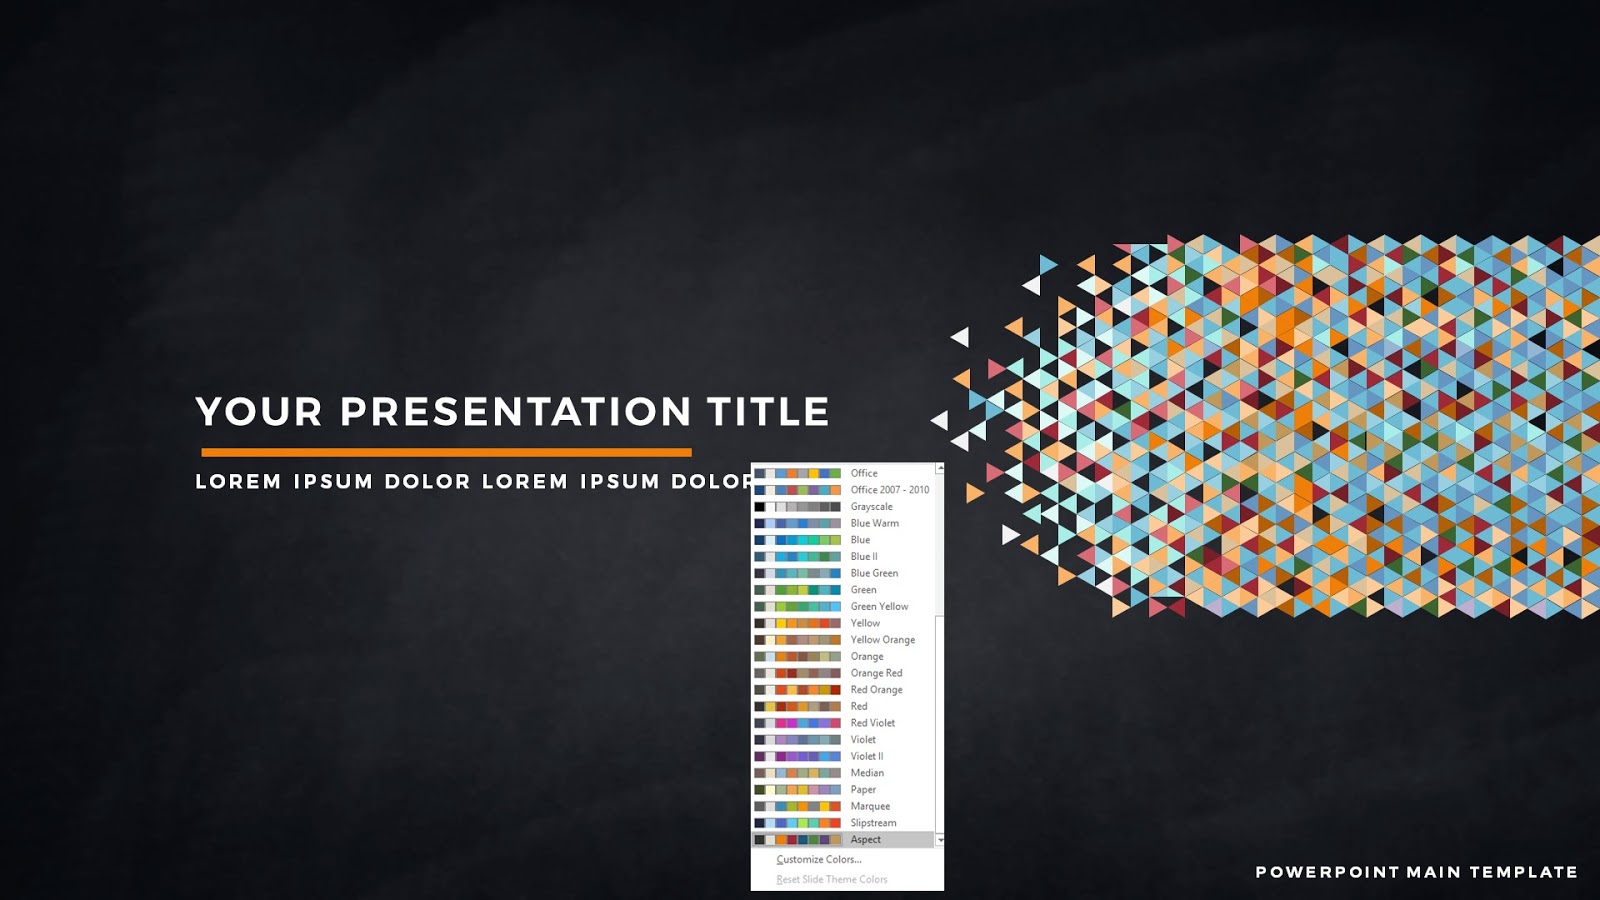 free powerpoint template with polygonal presentation title, Modern powerpoint